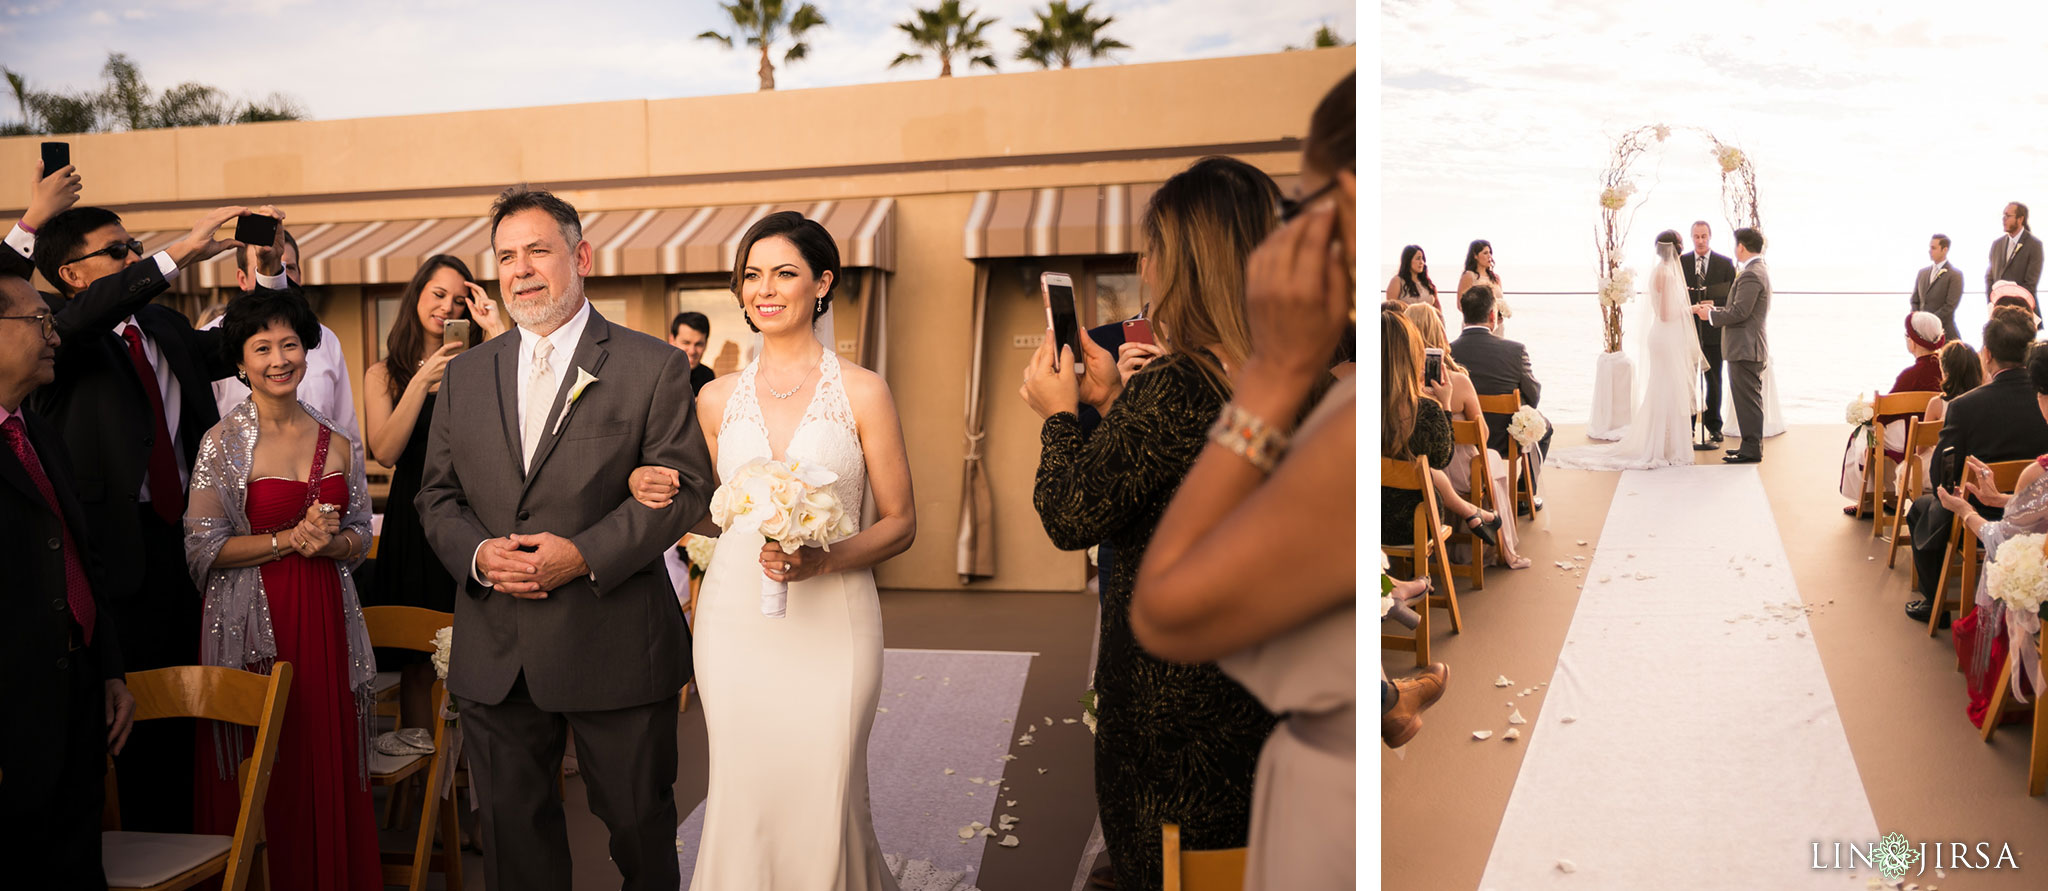 20 surf and sand resort laguna beach wedding ceremony photography